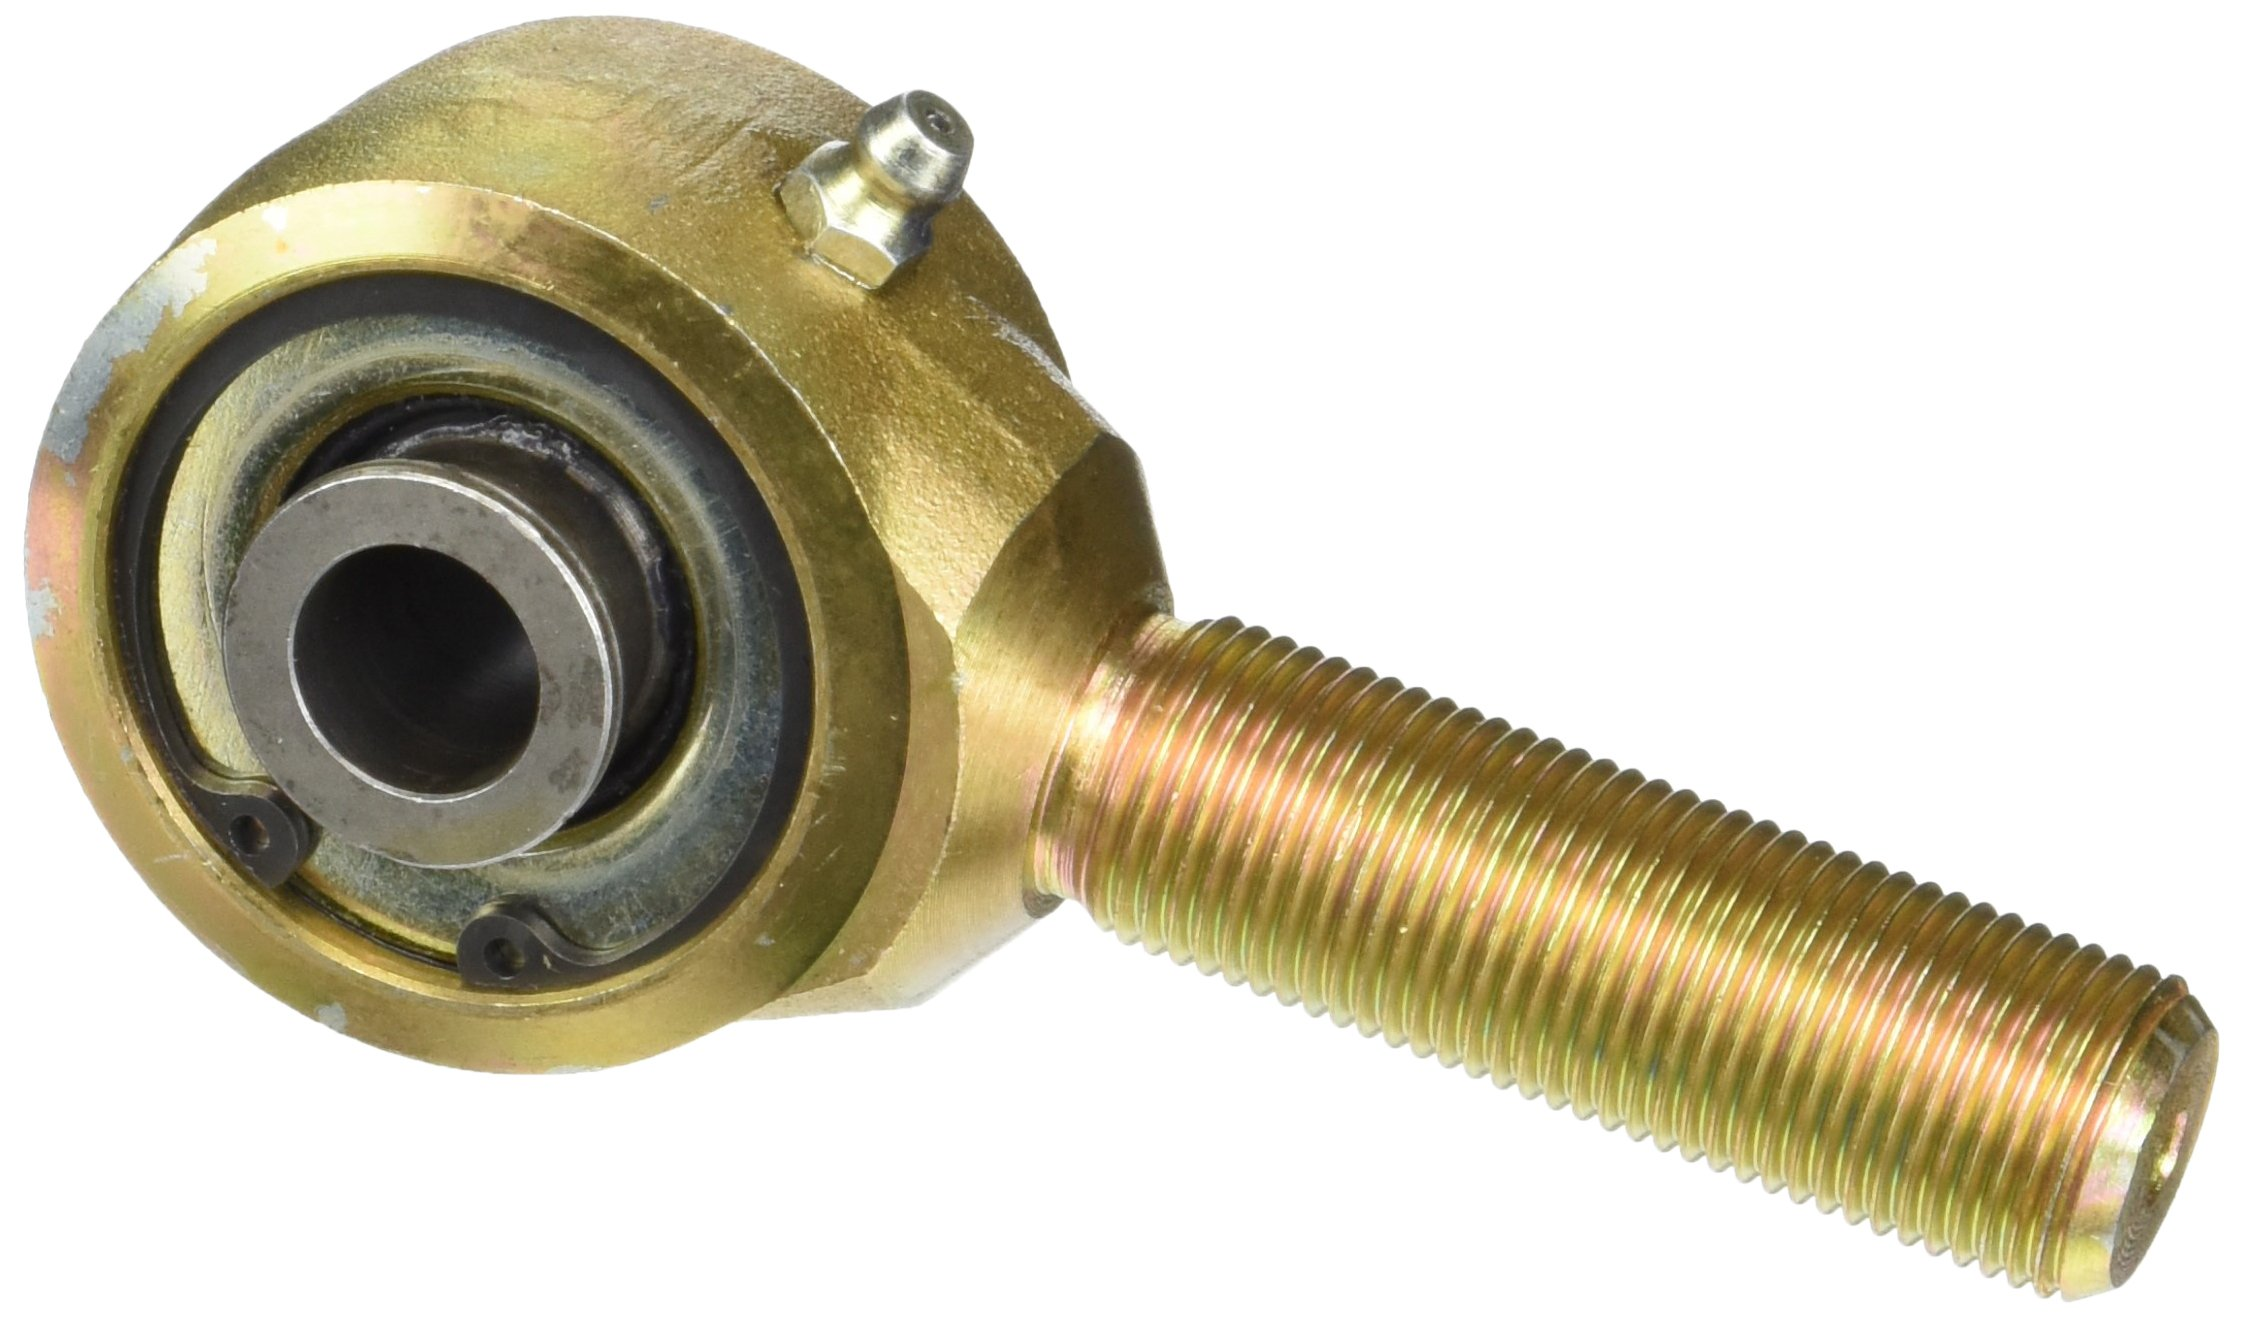 Currie Enterprises CE- 9112N75L-13 JOHNNY JOINT 2'' Narrow Forged Rod End with 3/4'' LH Thread and 0.562'' x 1.600'' Ball by Currie